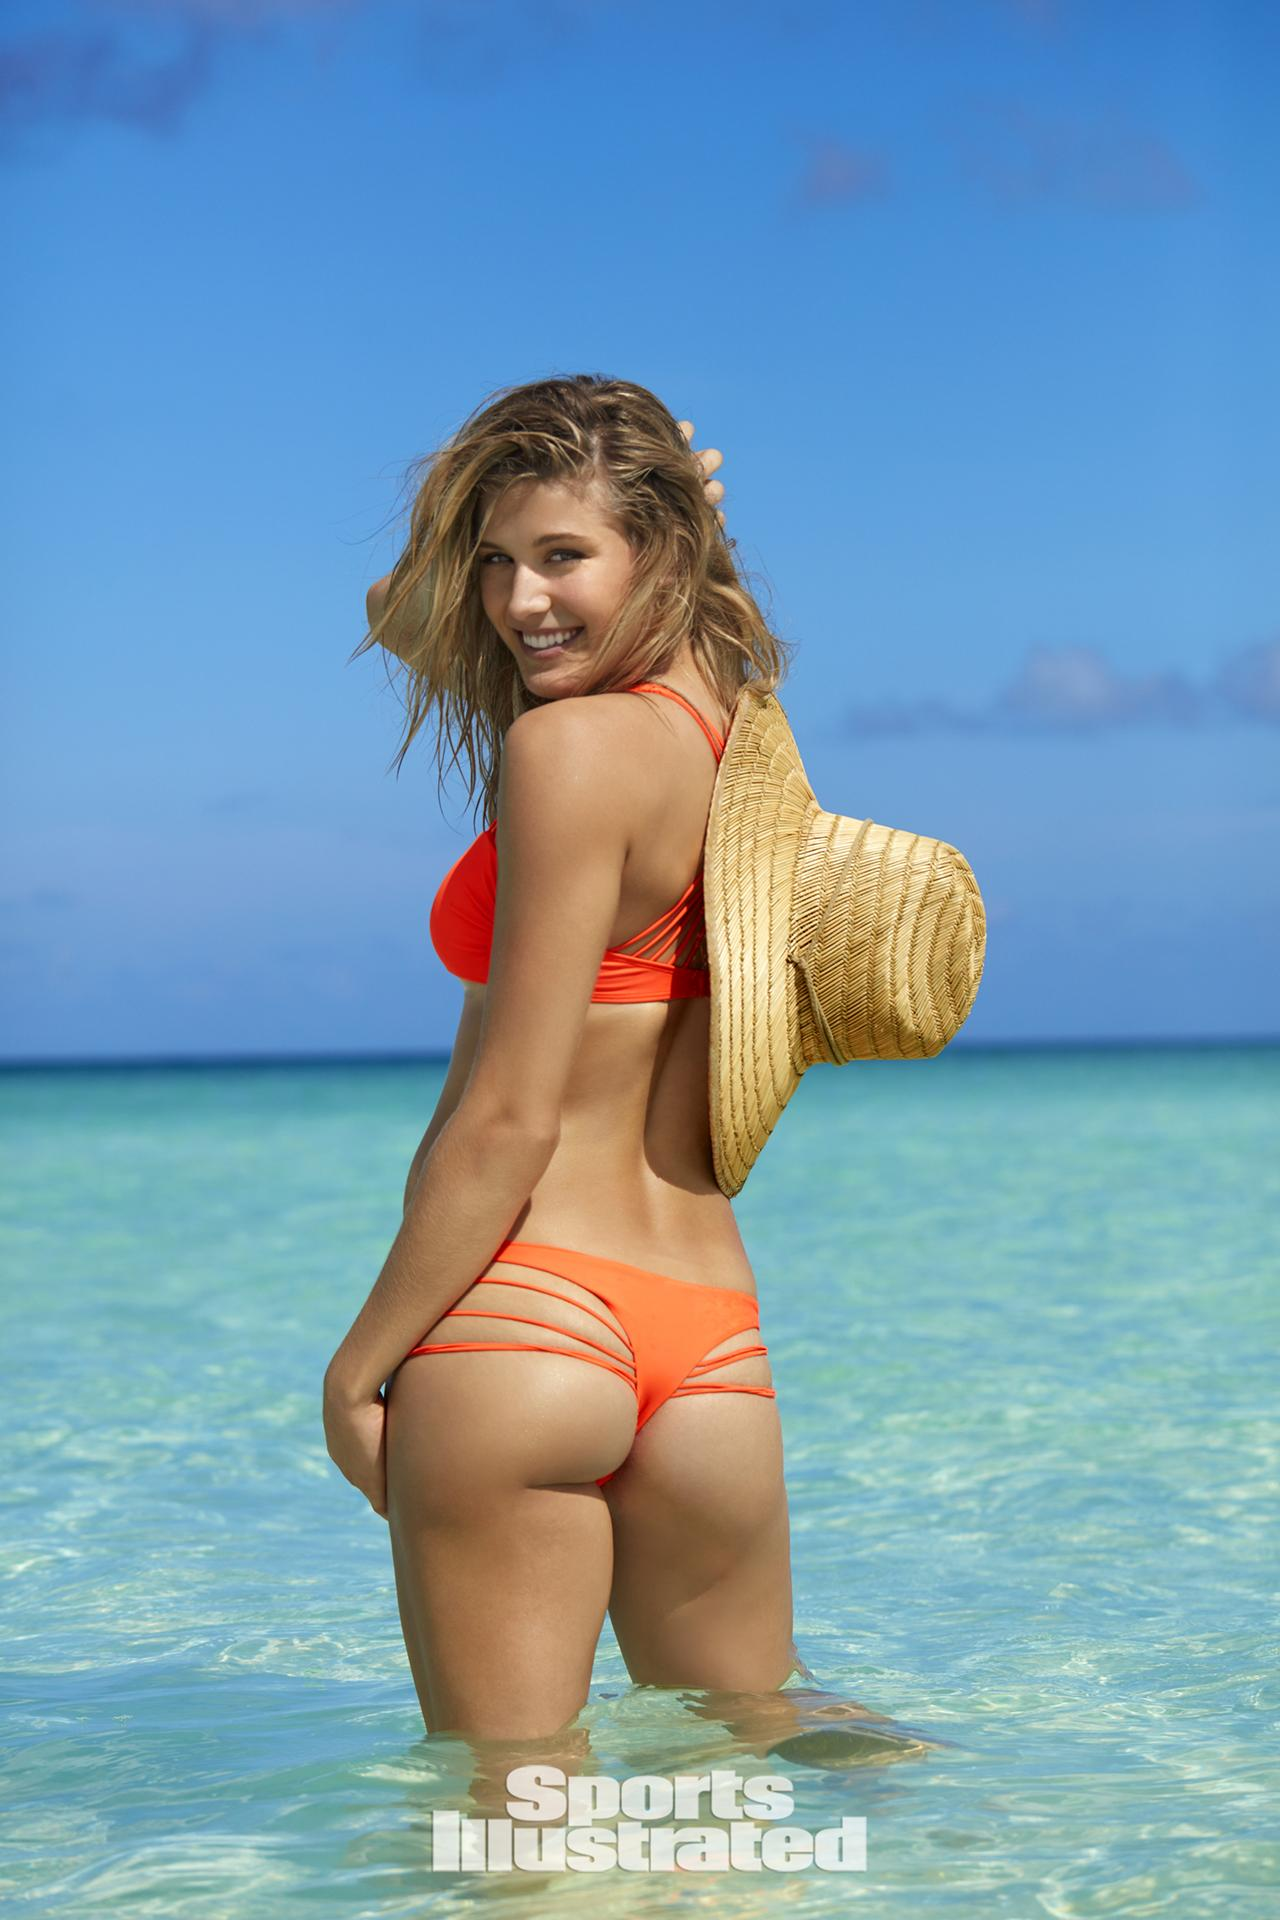 genie bouchard si swimsuit 2017 bikini string thong sexy hot nude naked